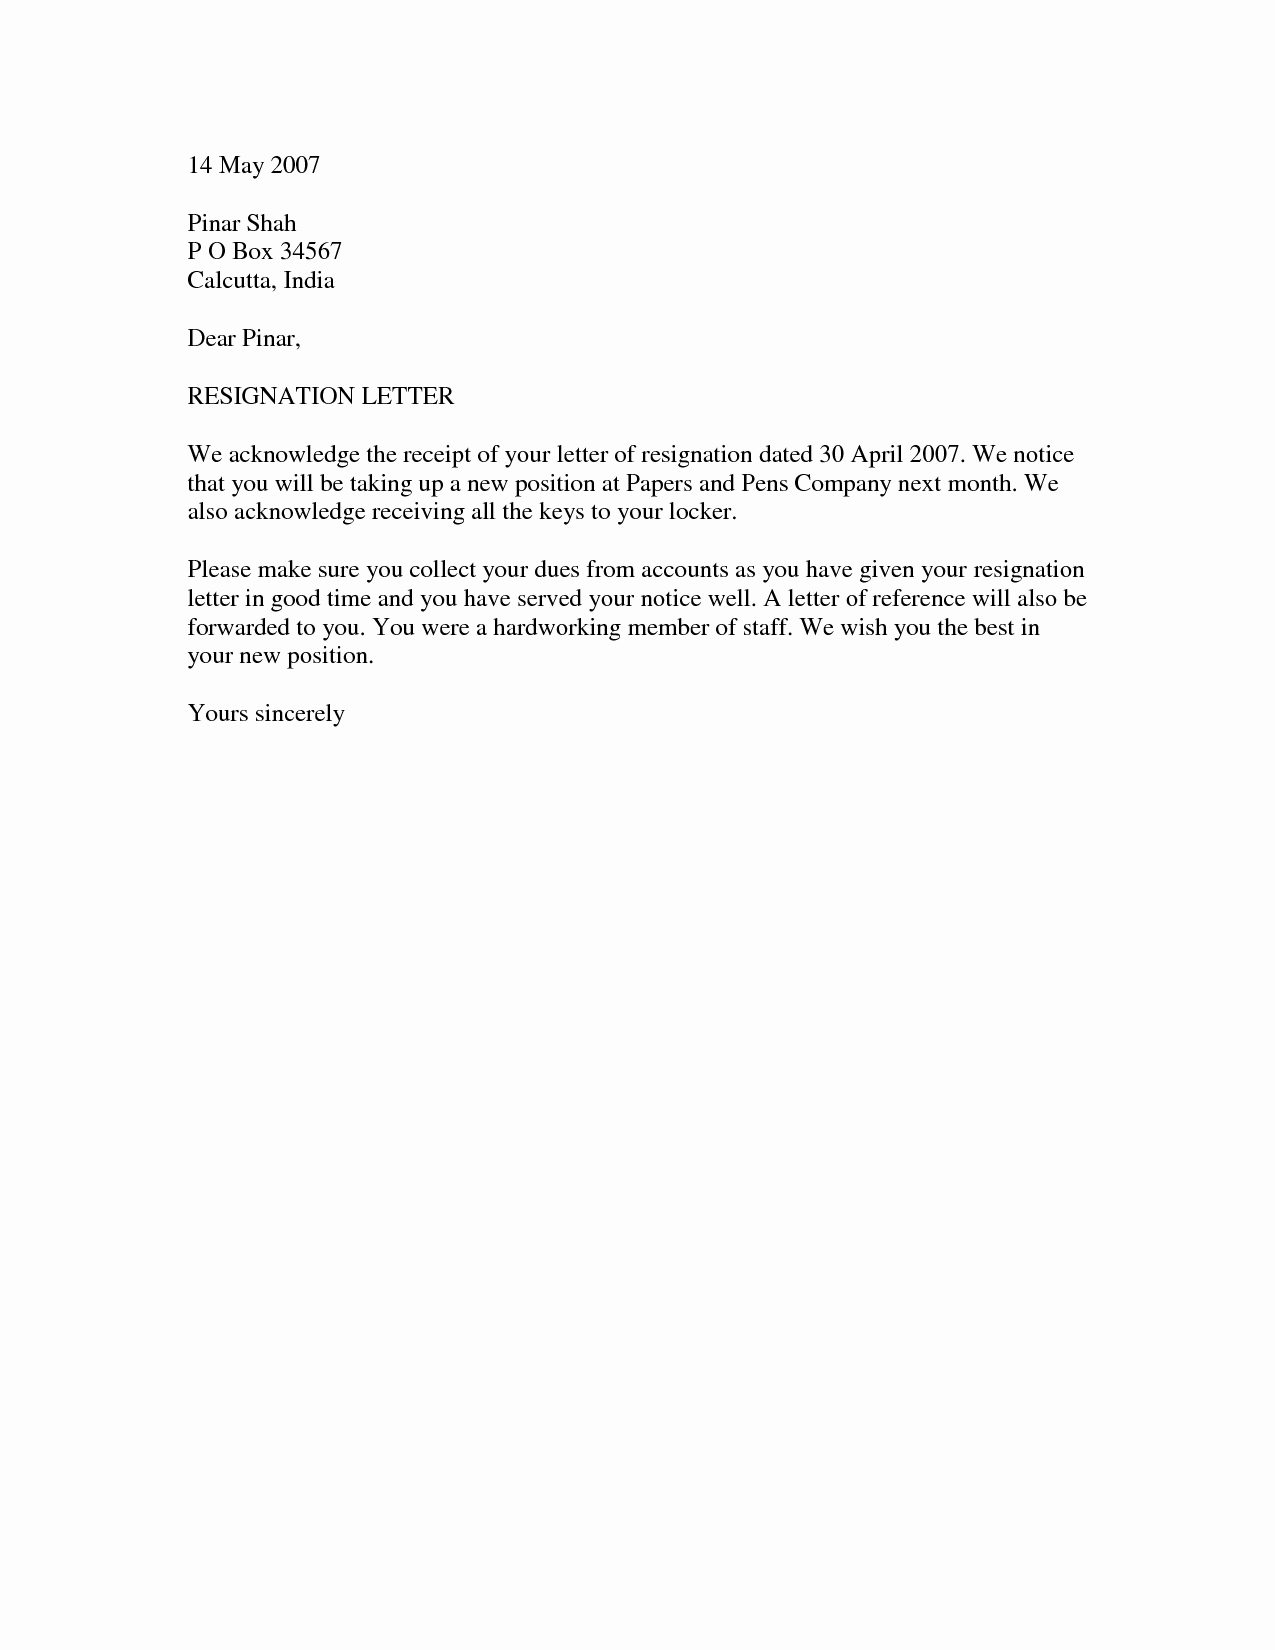 Free Ms Word Letter Templates Best Of Resignation Letter Template